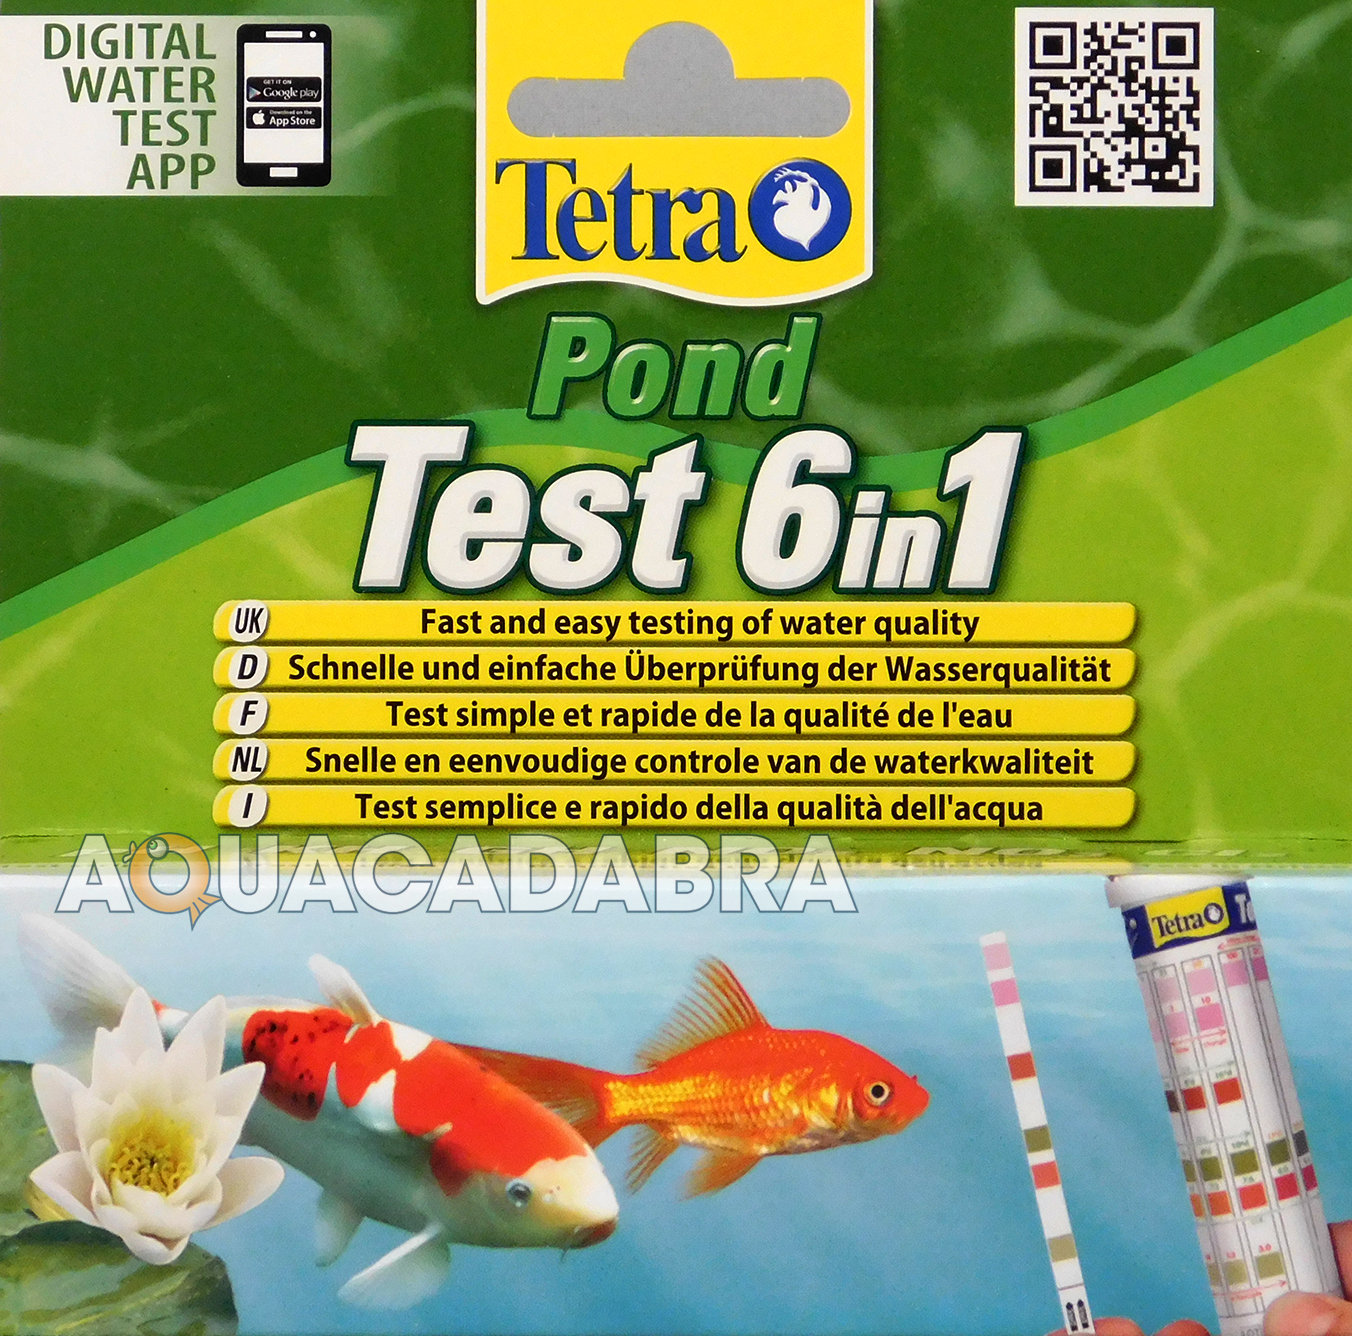 Tetra pond strips 6 in 1 quick test kit koi fish water for Koi pond water quality